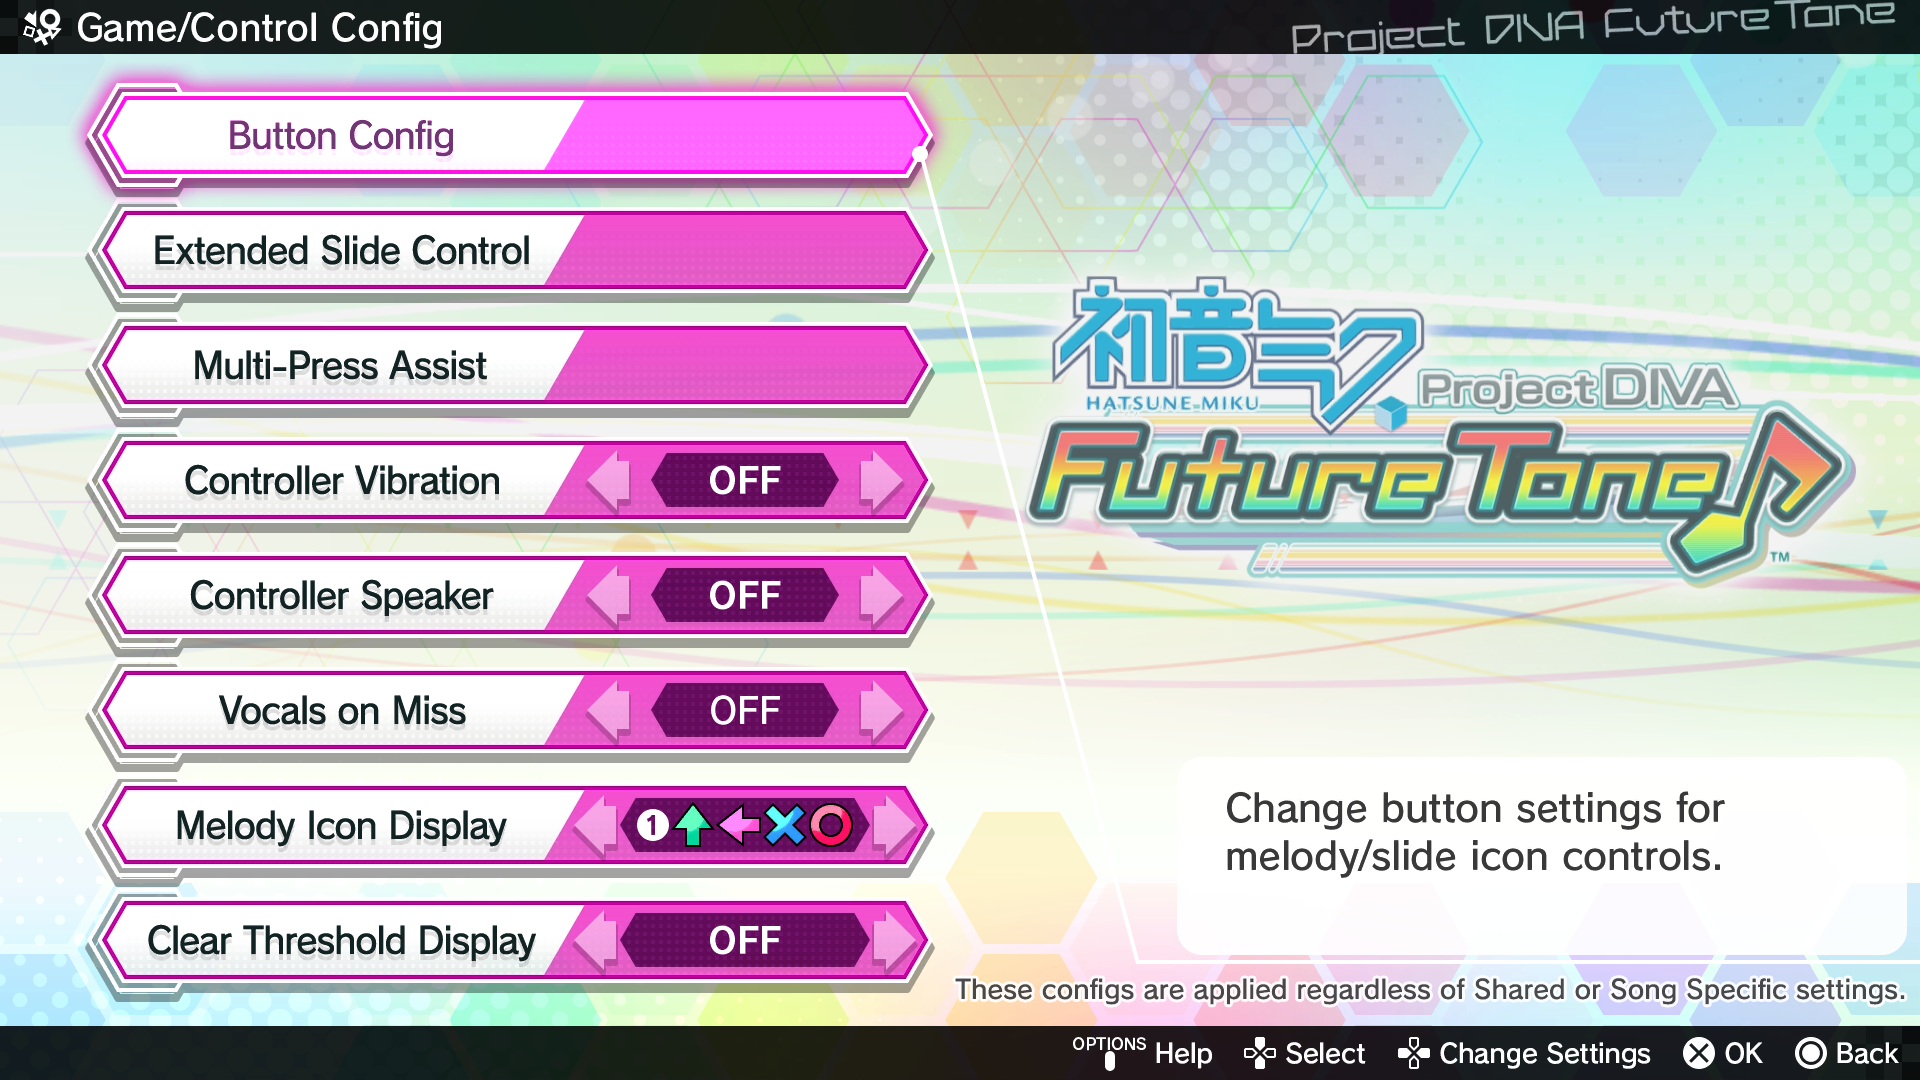 Web Manual Hatsune Miku Project Diva Future Tone Switch Beside The Pot Is Used To Be Able Off All Game Control Config